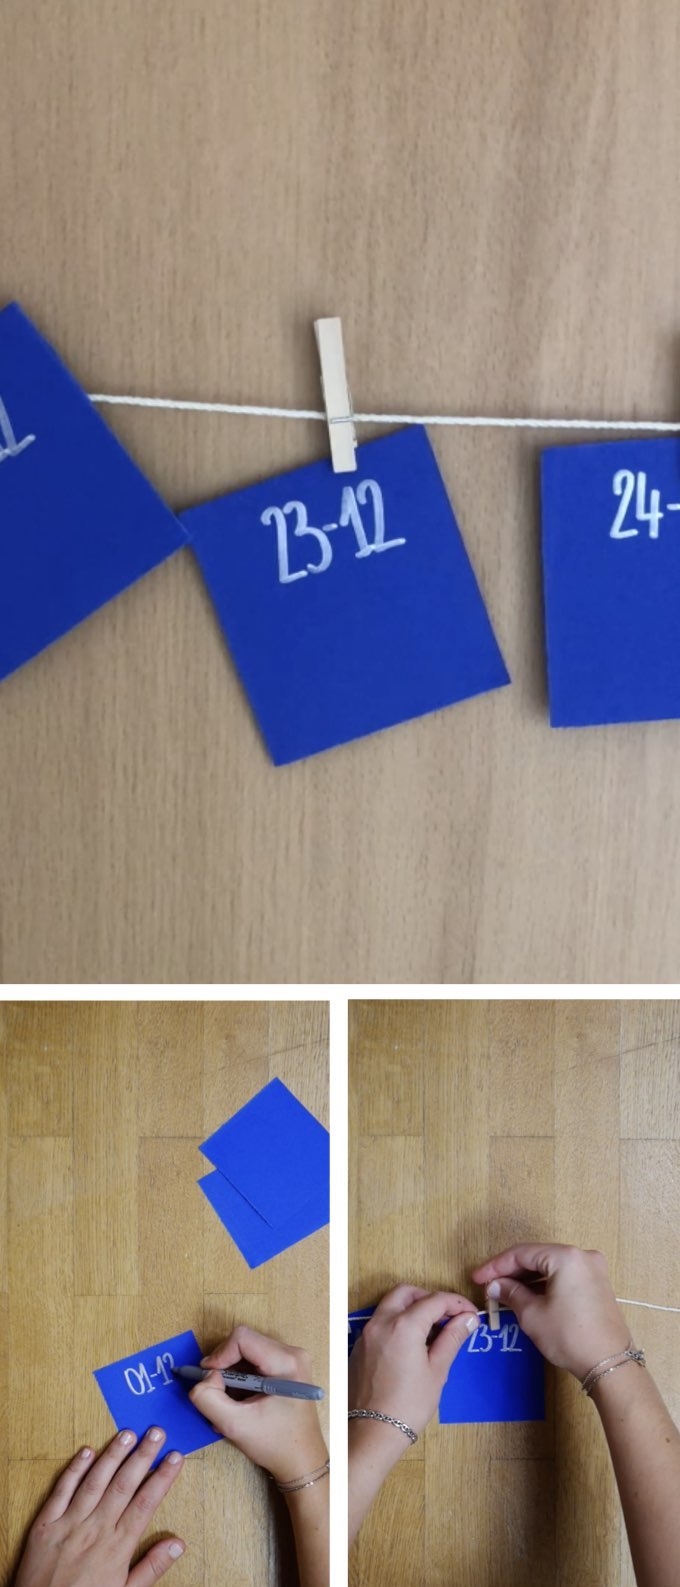 calendrier avent diy papier bleu calligraphie argent accrocher blog déco clem around the corner